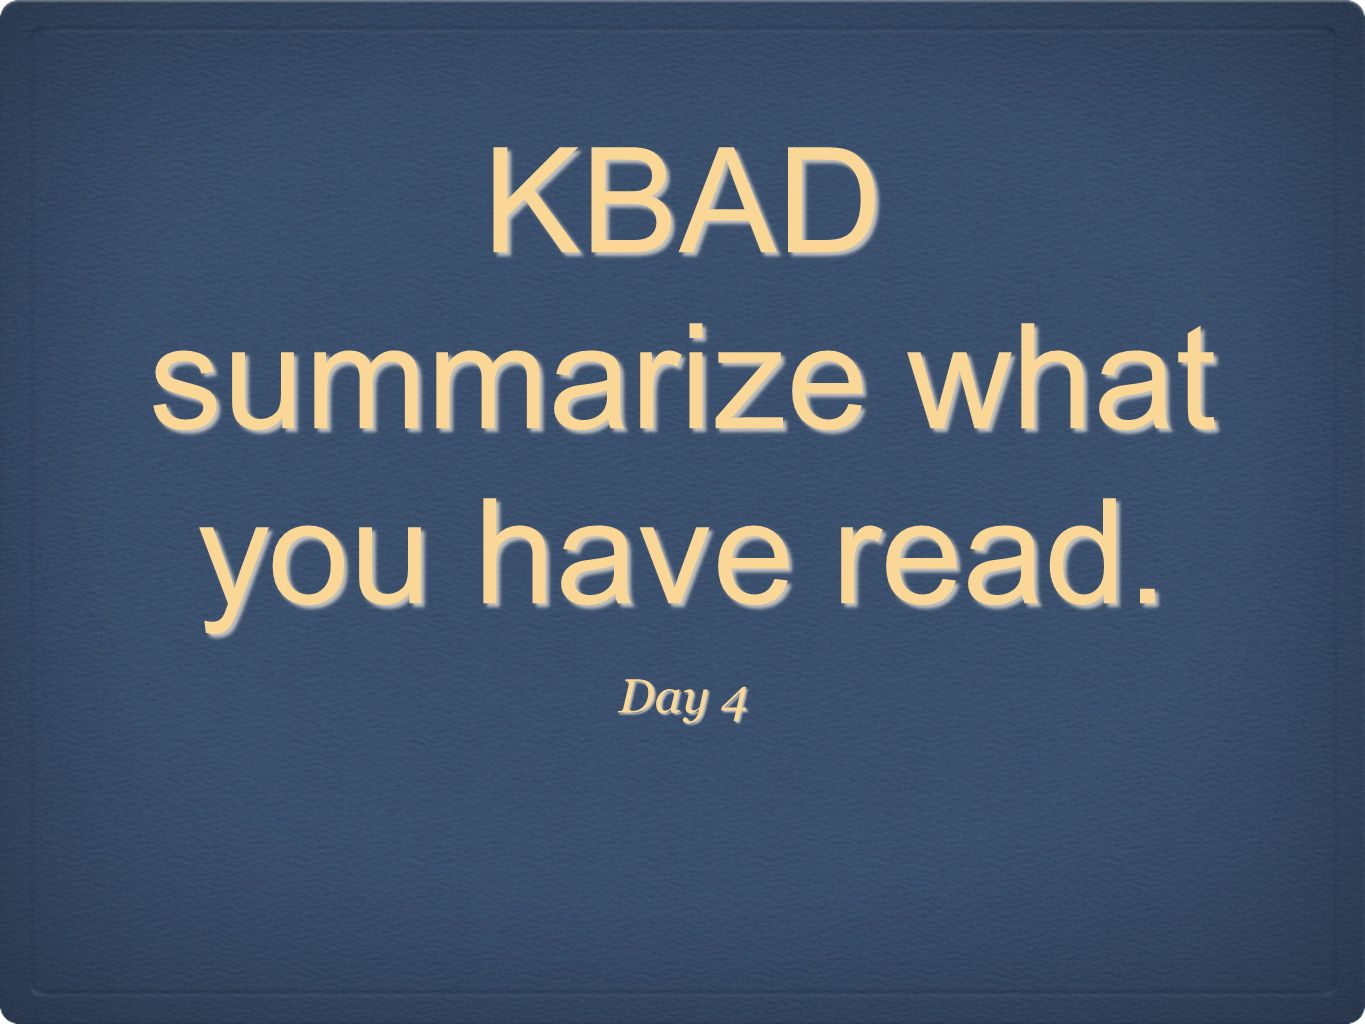 KBAD summarize what you have read. Day 4